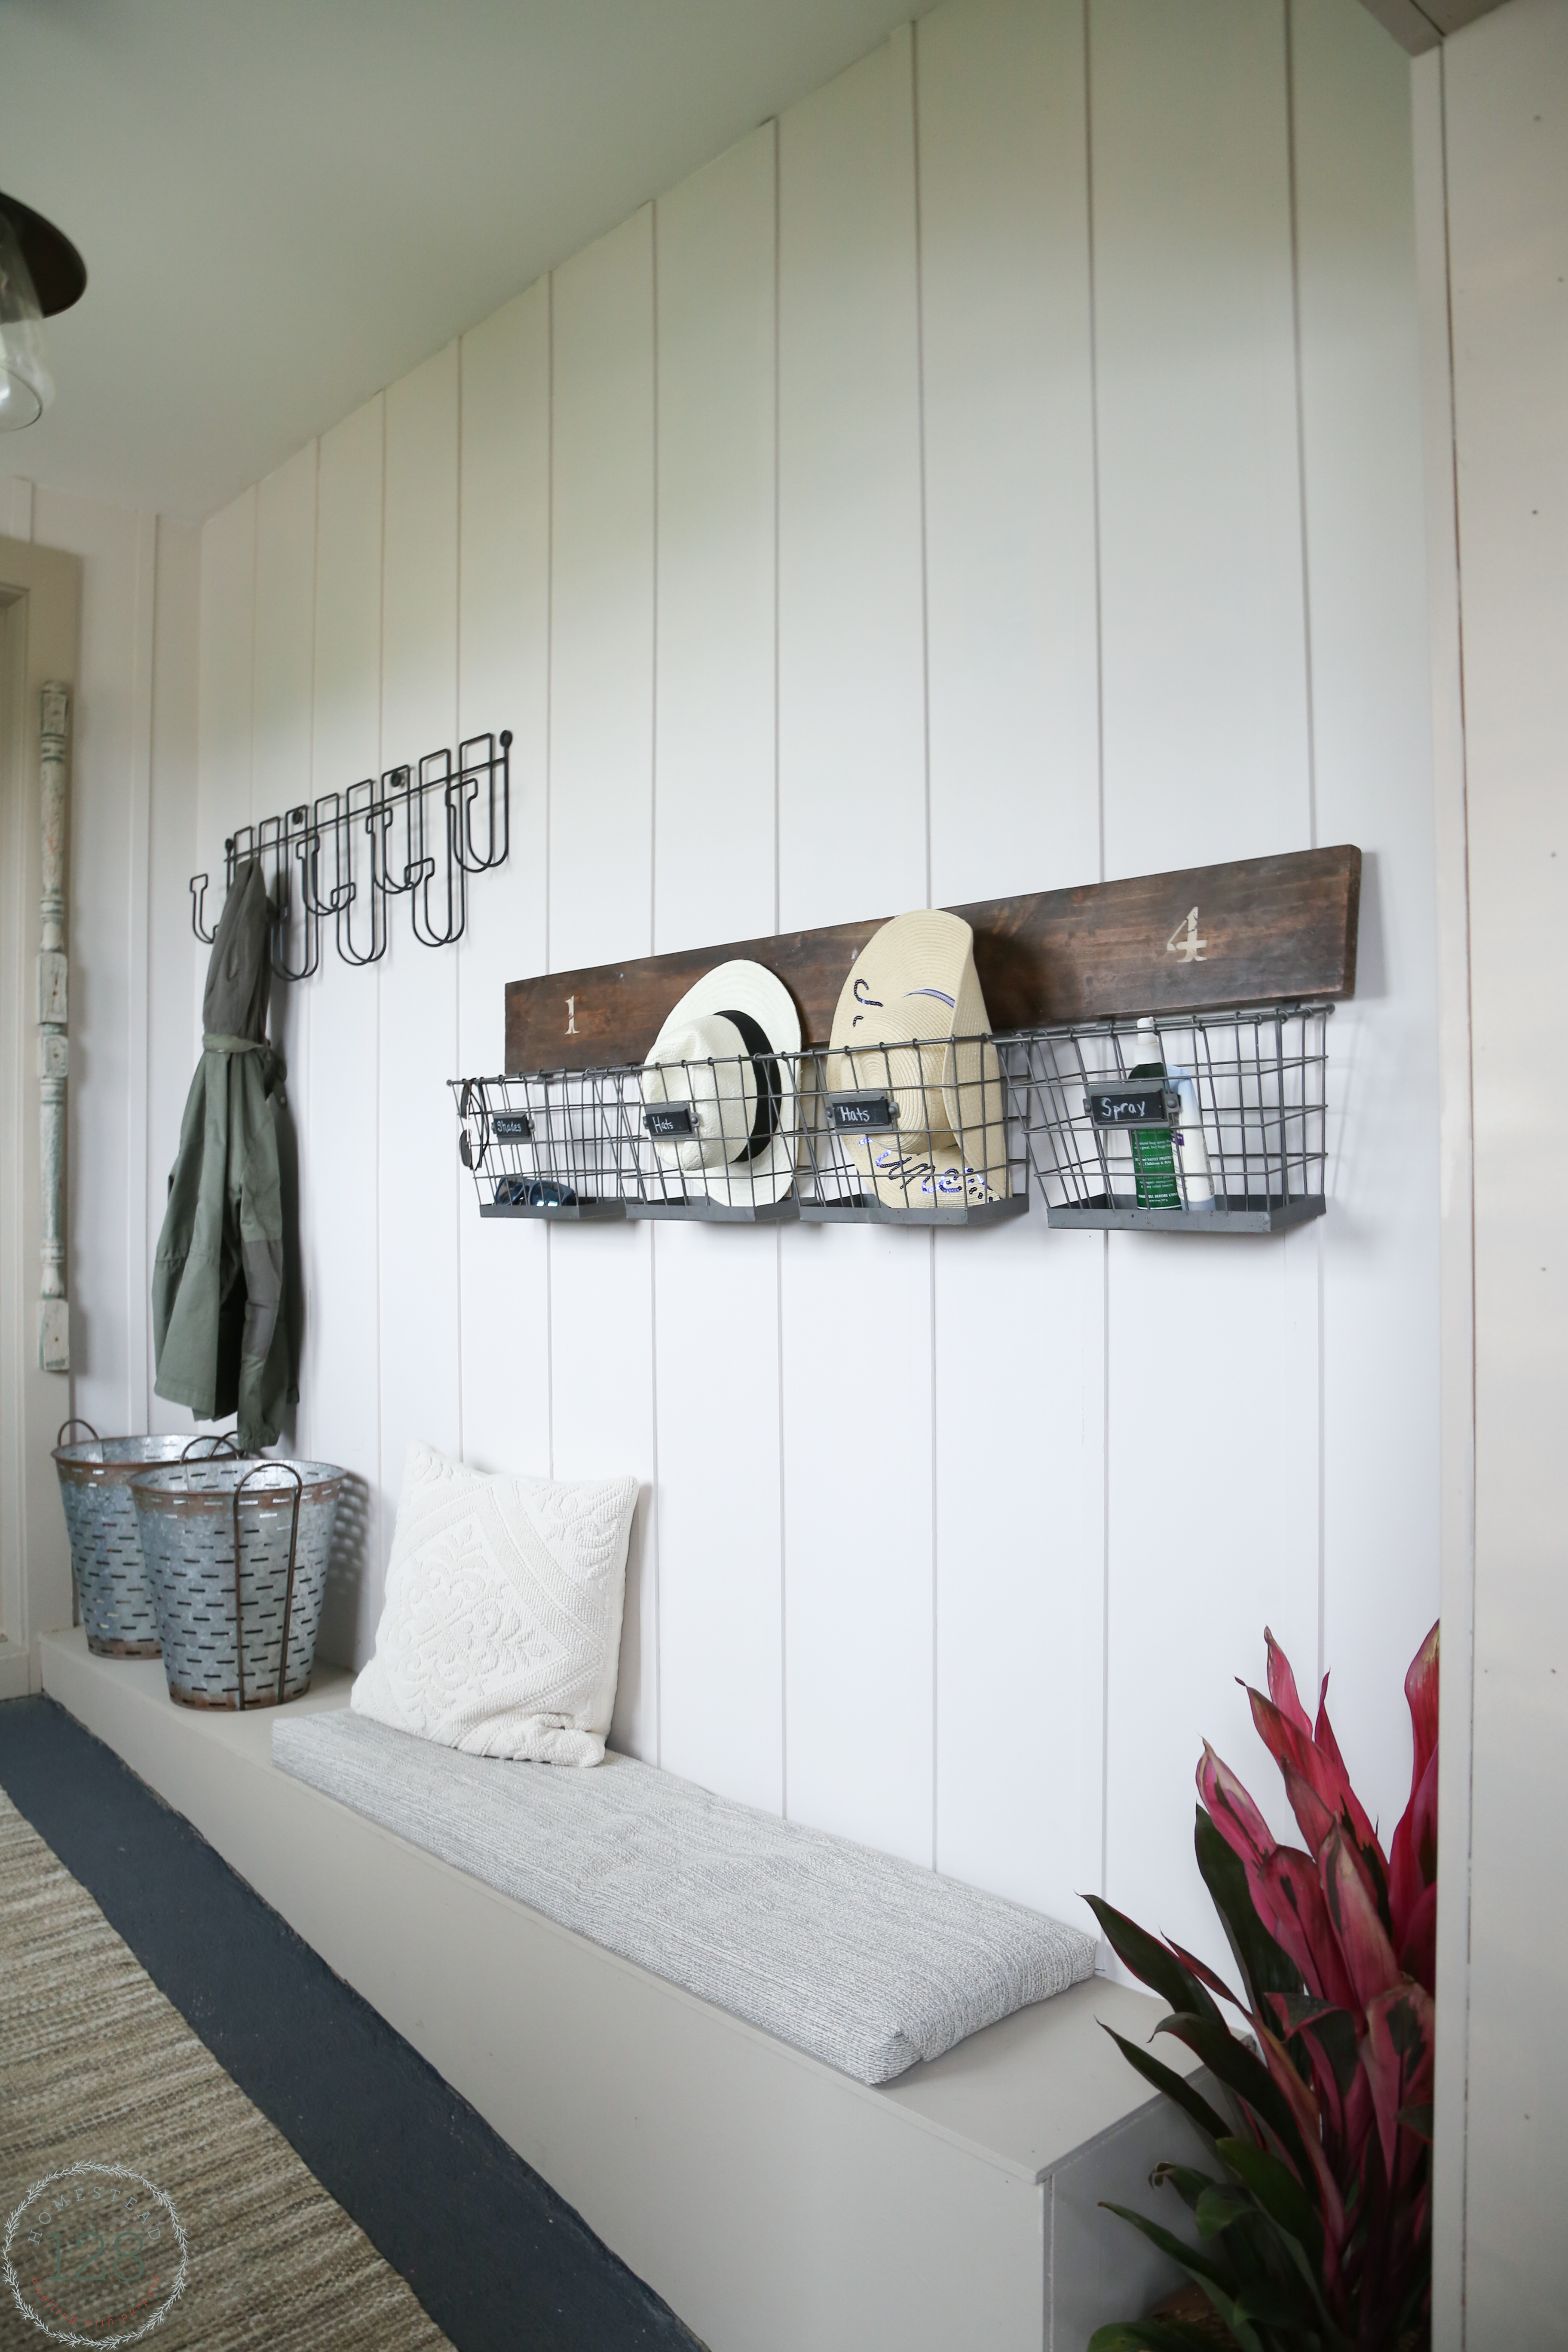 Farmhouse mudroom make from an old walkway. Batten trimmed walls, built in benches, all with modern and vintage touches.